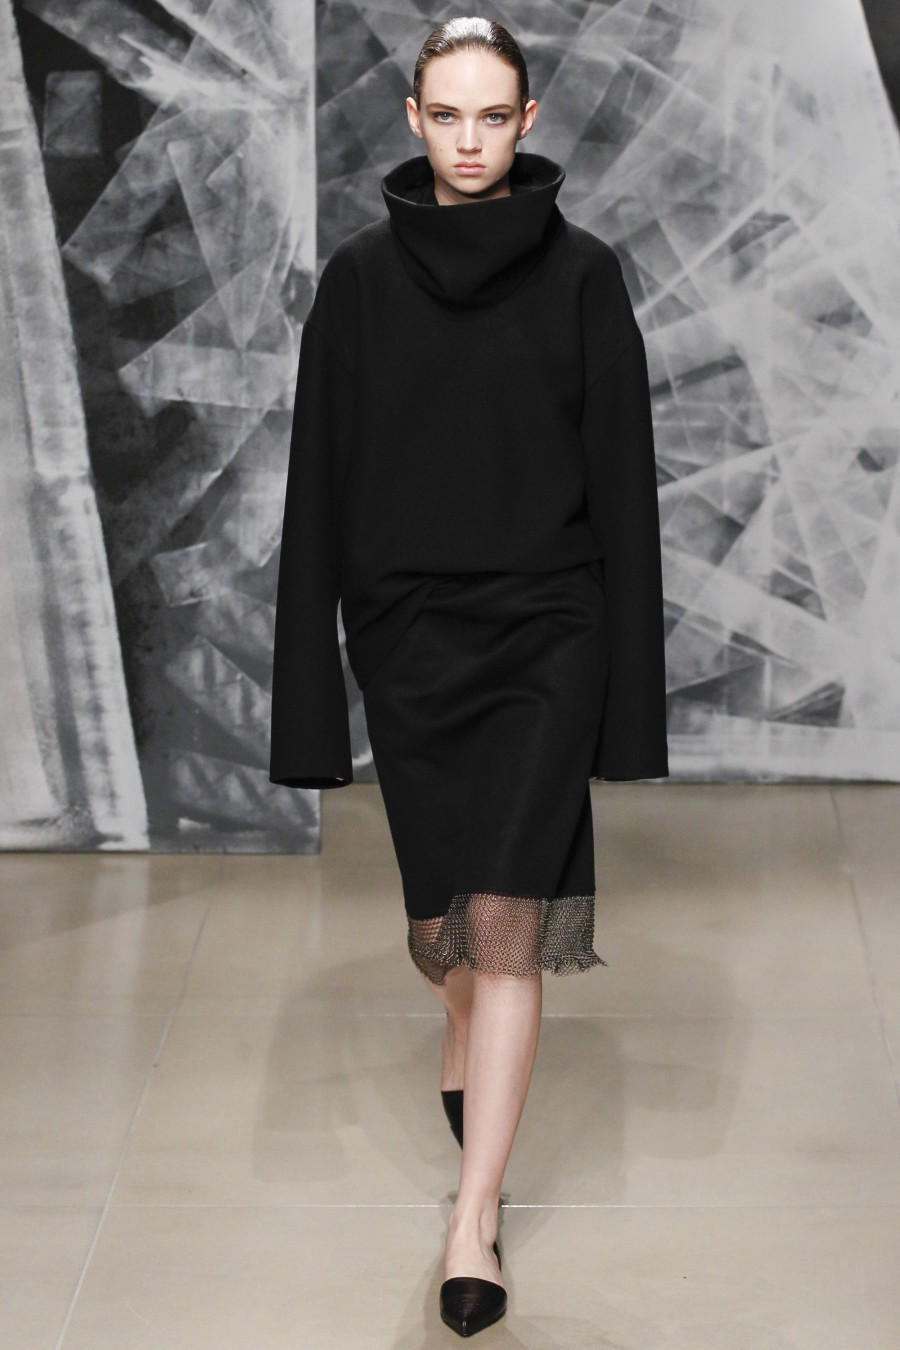 Jil Sander Fall 2016 Collection, Minimalist Fahsion, Minimal Trend, How To Minimal, Minimal Style, 2016 Minimalist, Minimalist Blog, Fashion Week, Minimal Clothes, Minimal Brand, Minimal Clothing